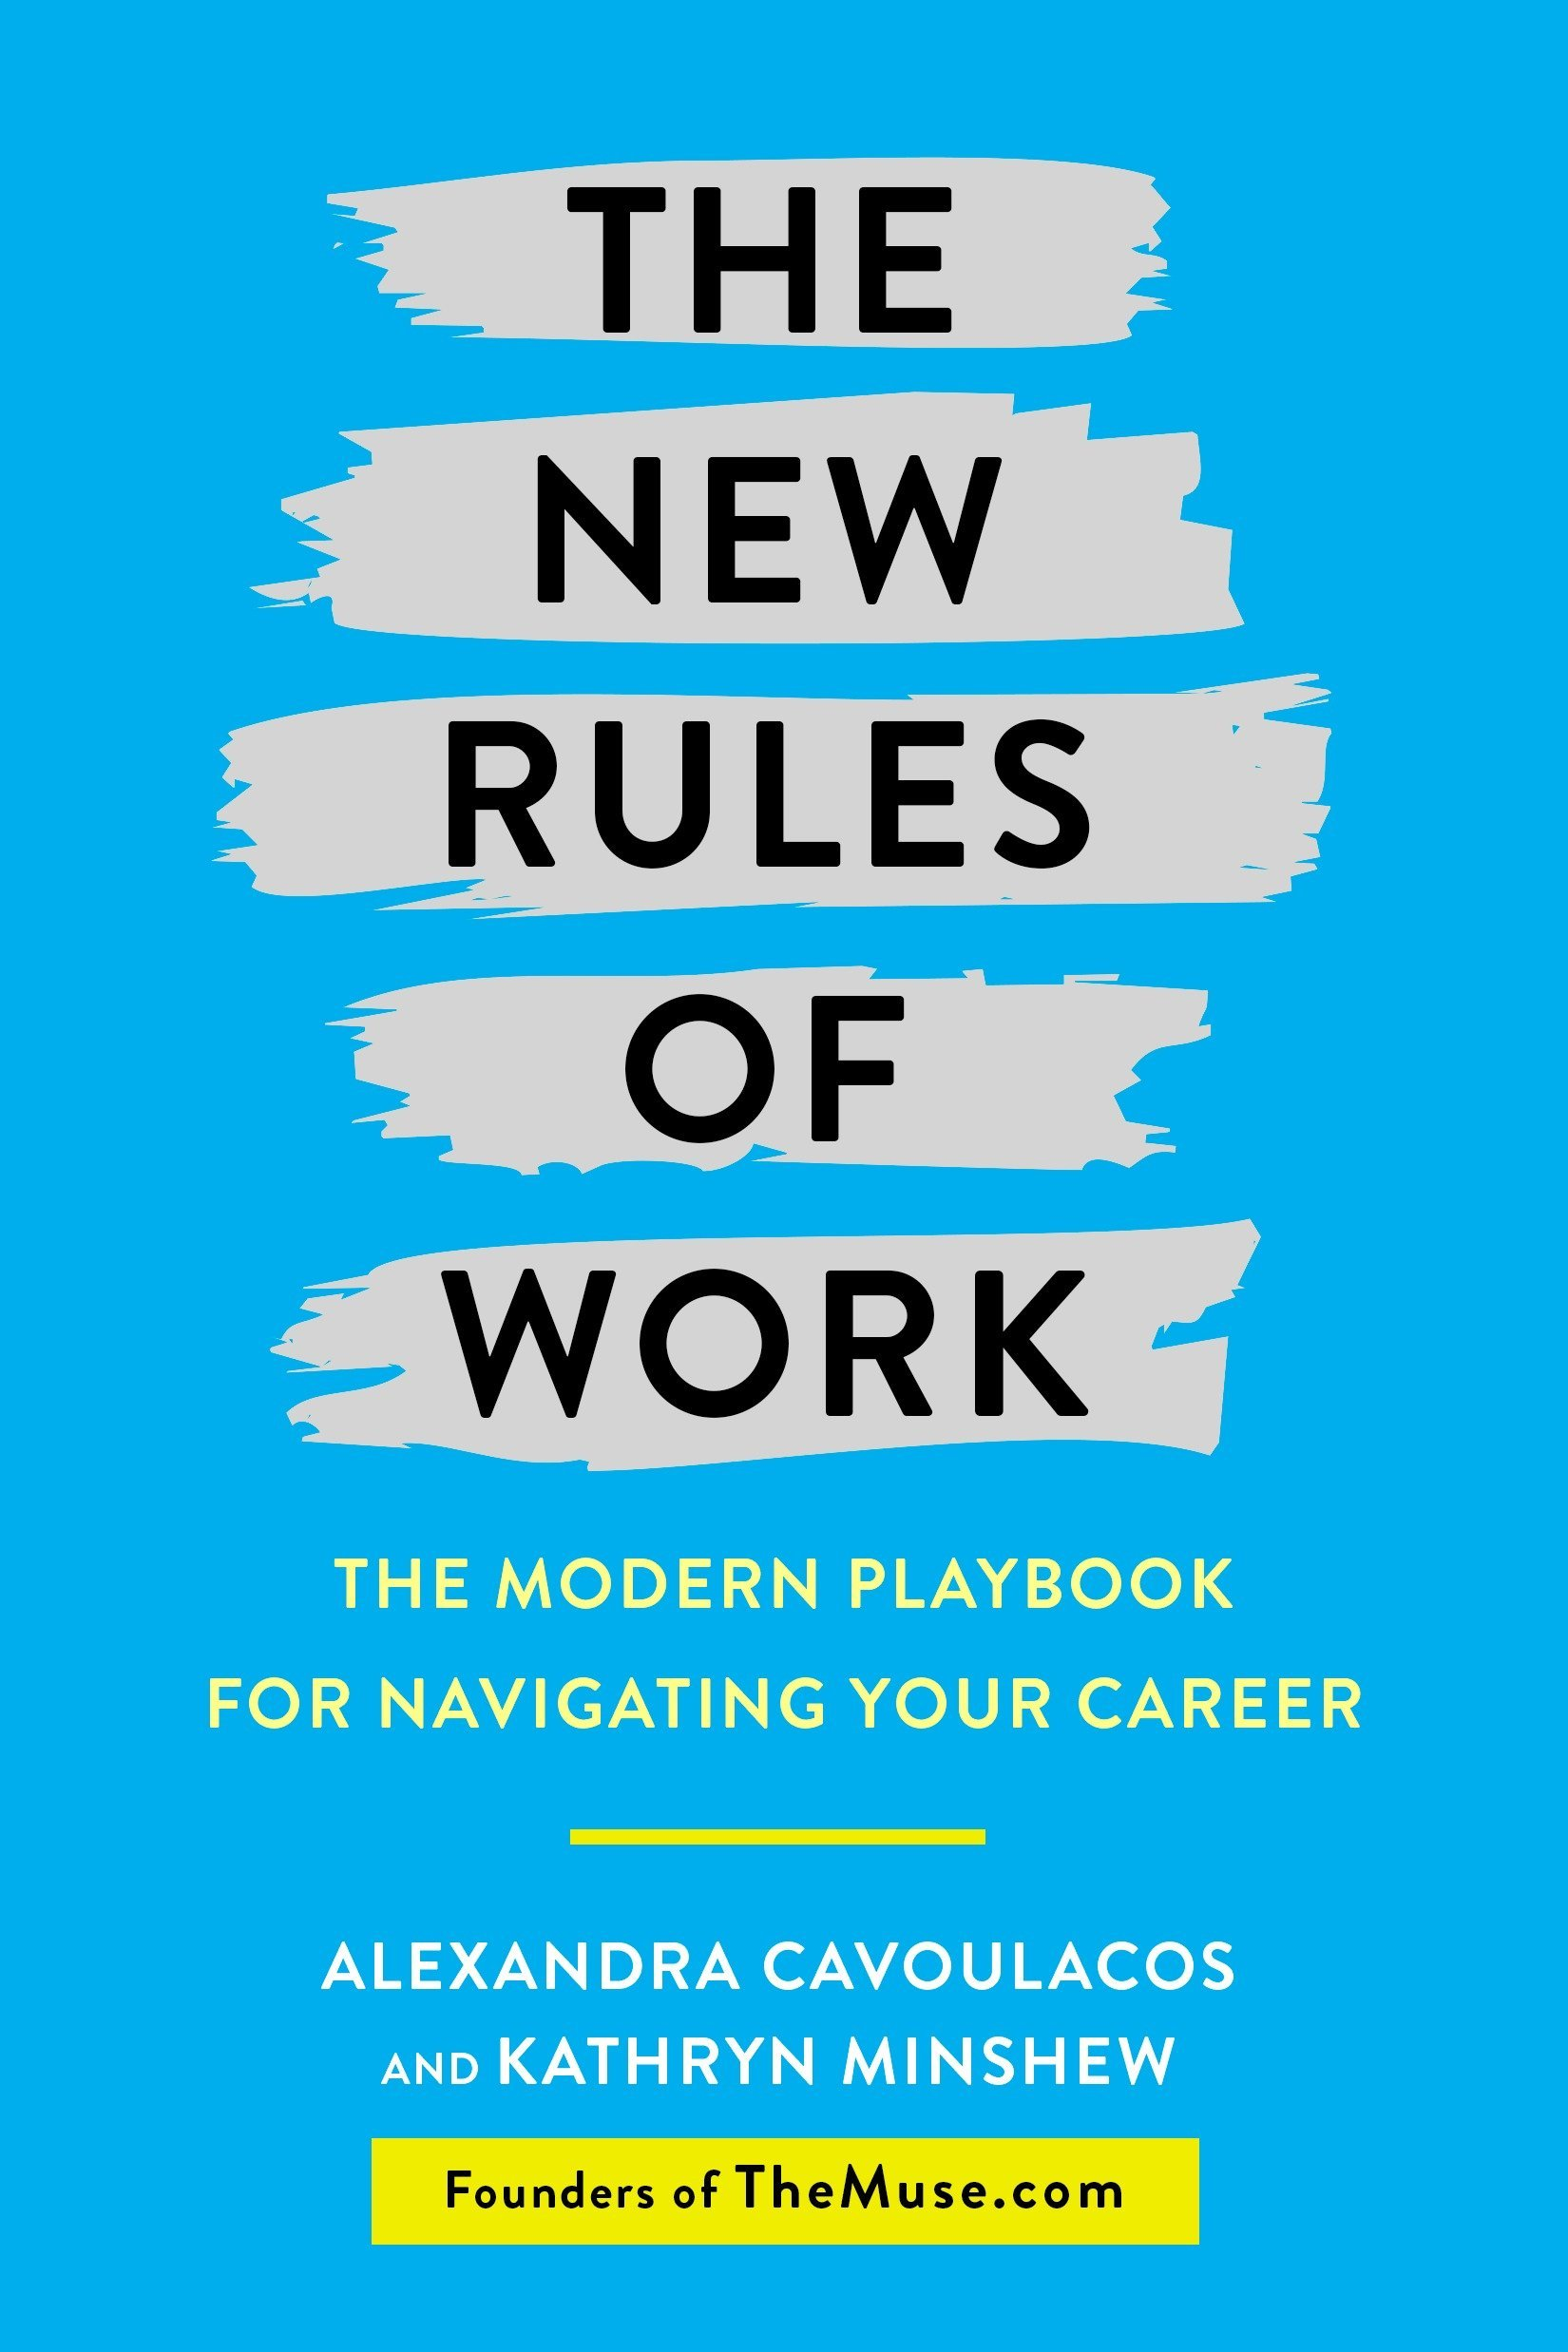 The New Rules of Work: The Modern Playbook for Navigating Your